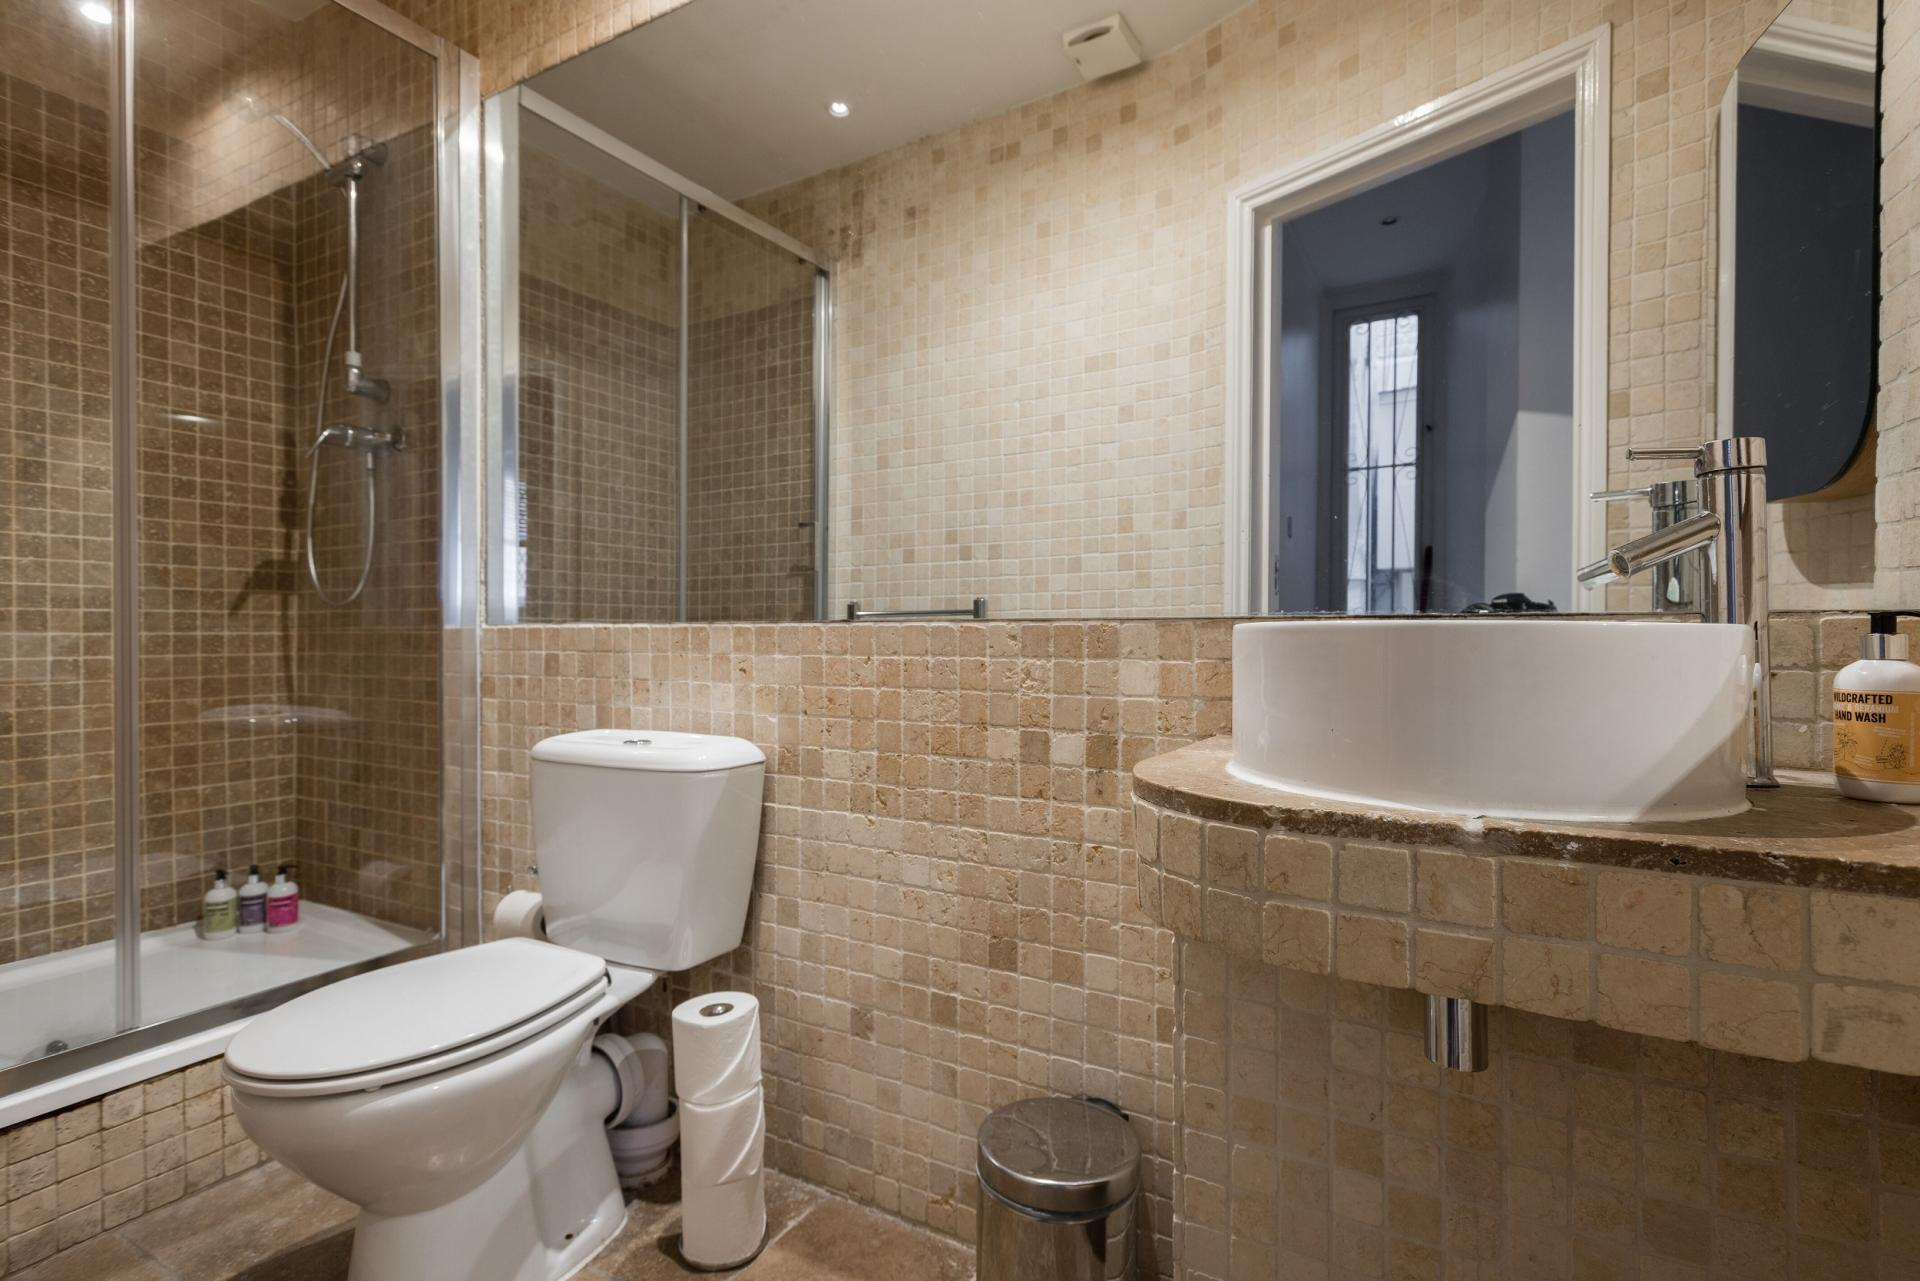 Shower at The Bayswater Gardens House, Bayswater, London - Citybase Apartments